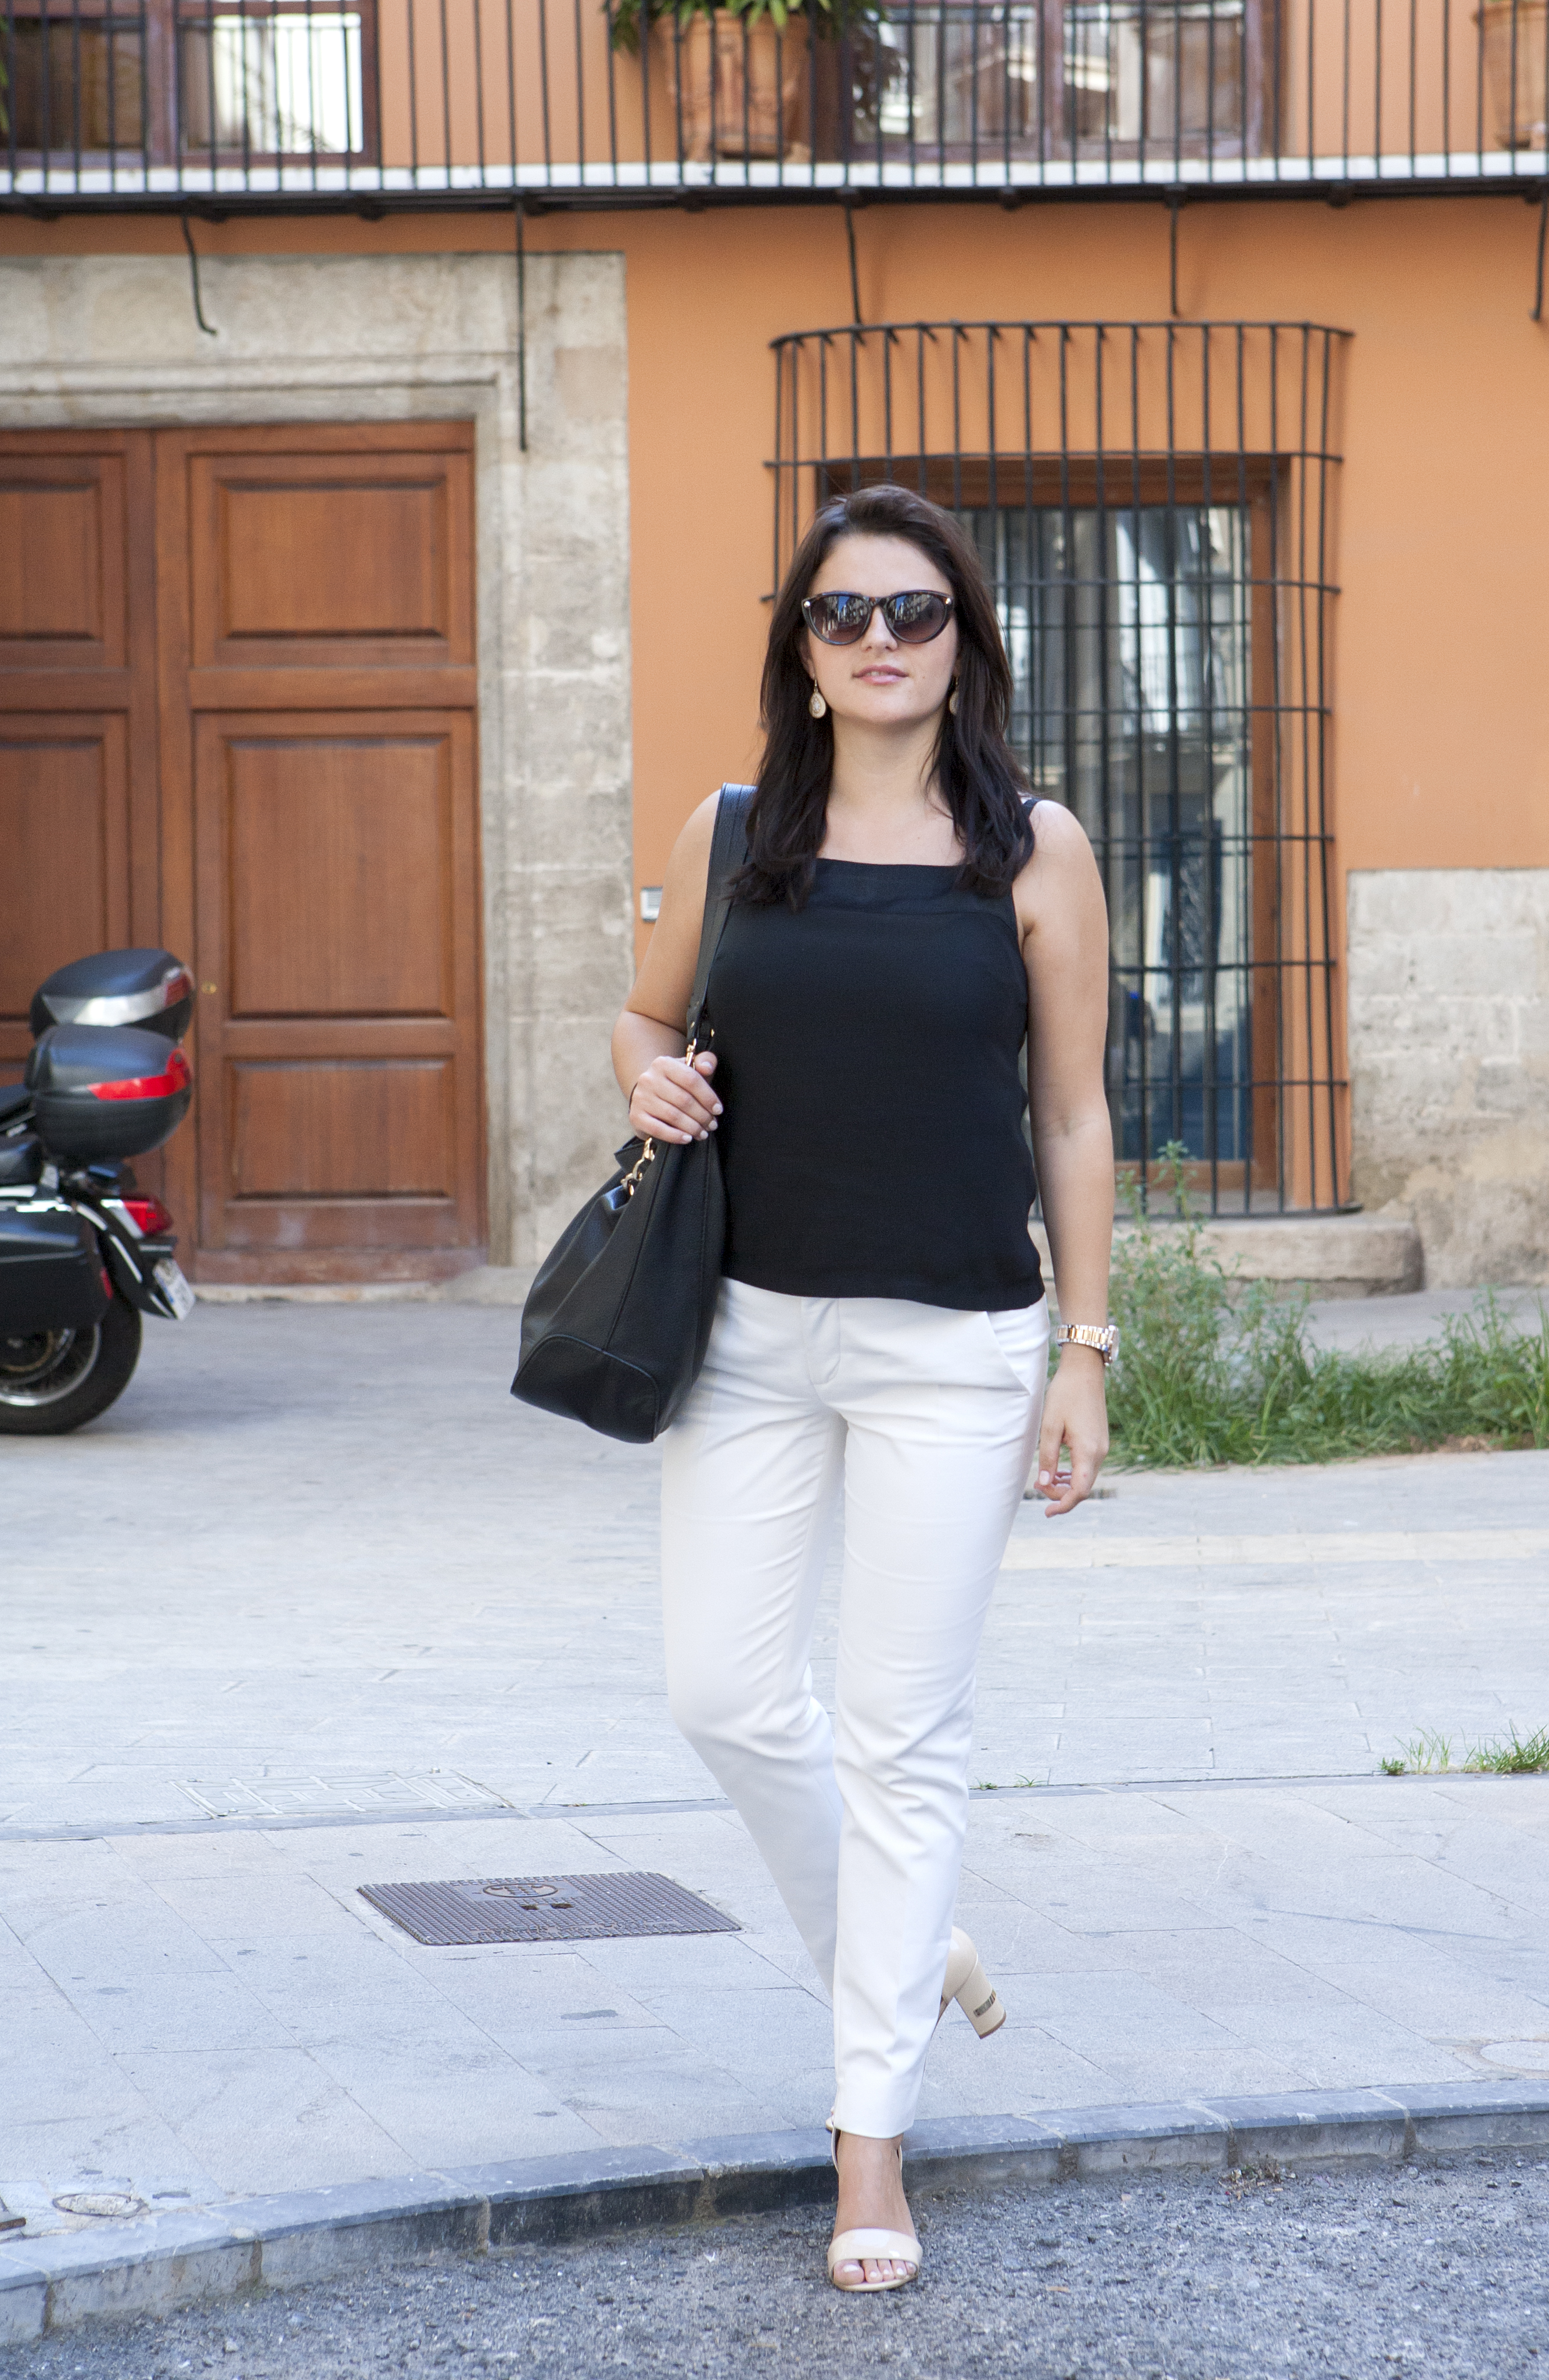 office outfit for summer in white pants and elegant black top